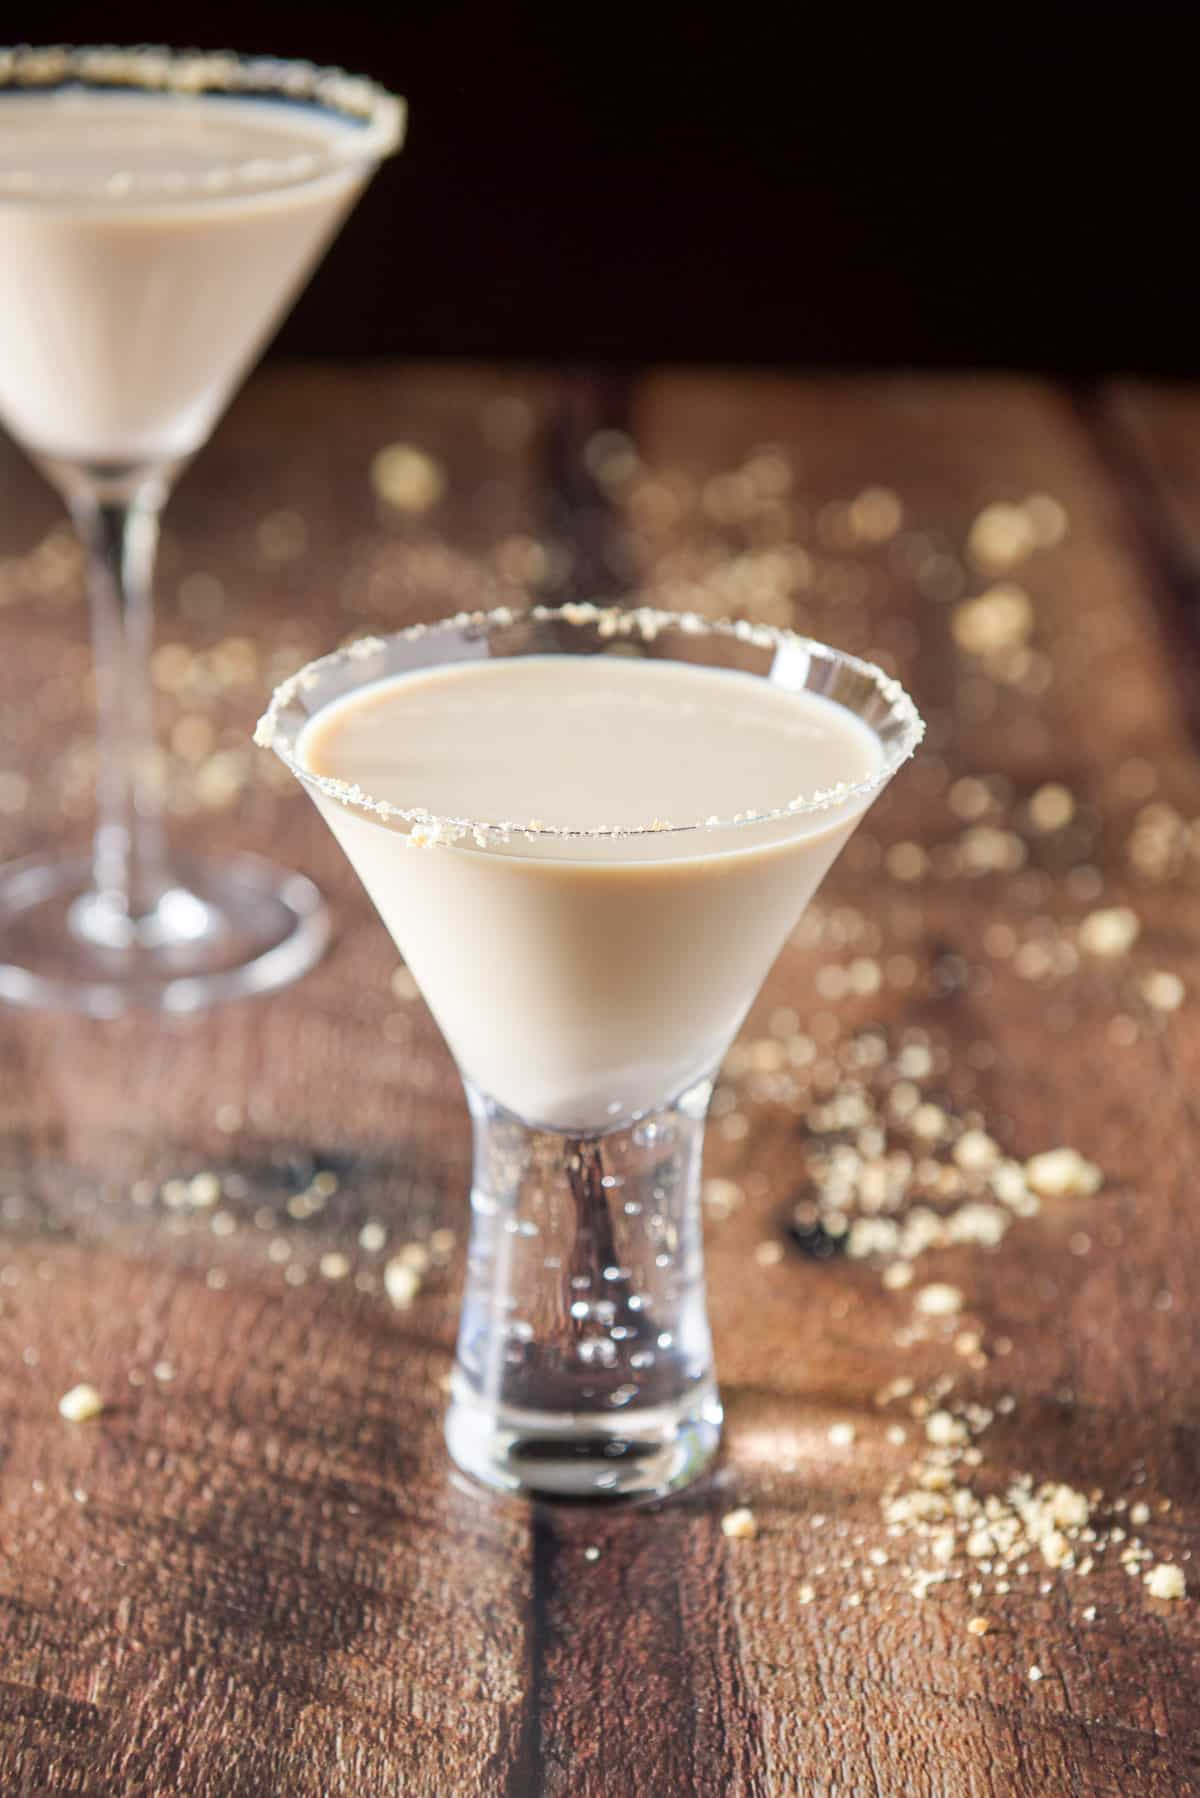 A small bubble glass garnished with cookie crumbs and the cream drink in it. There is a classic martini glass and cookie crumbs on the table behind it